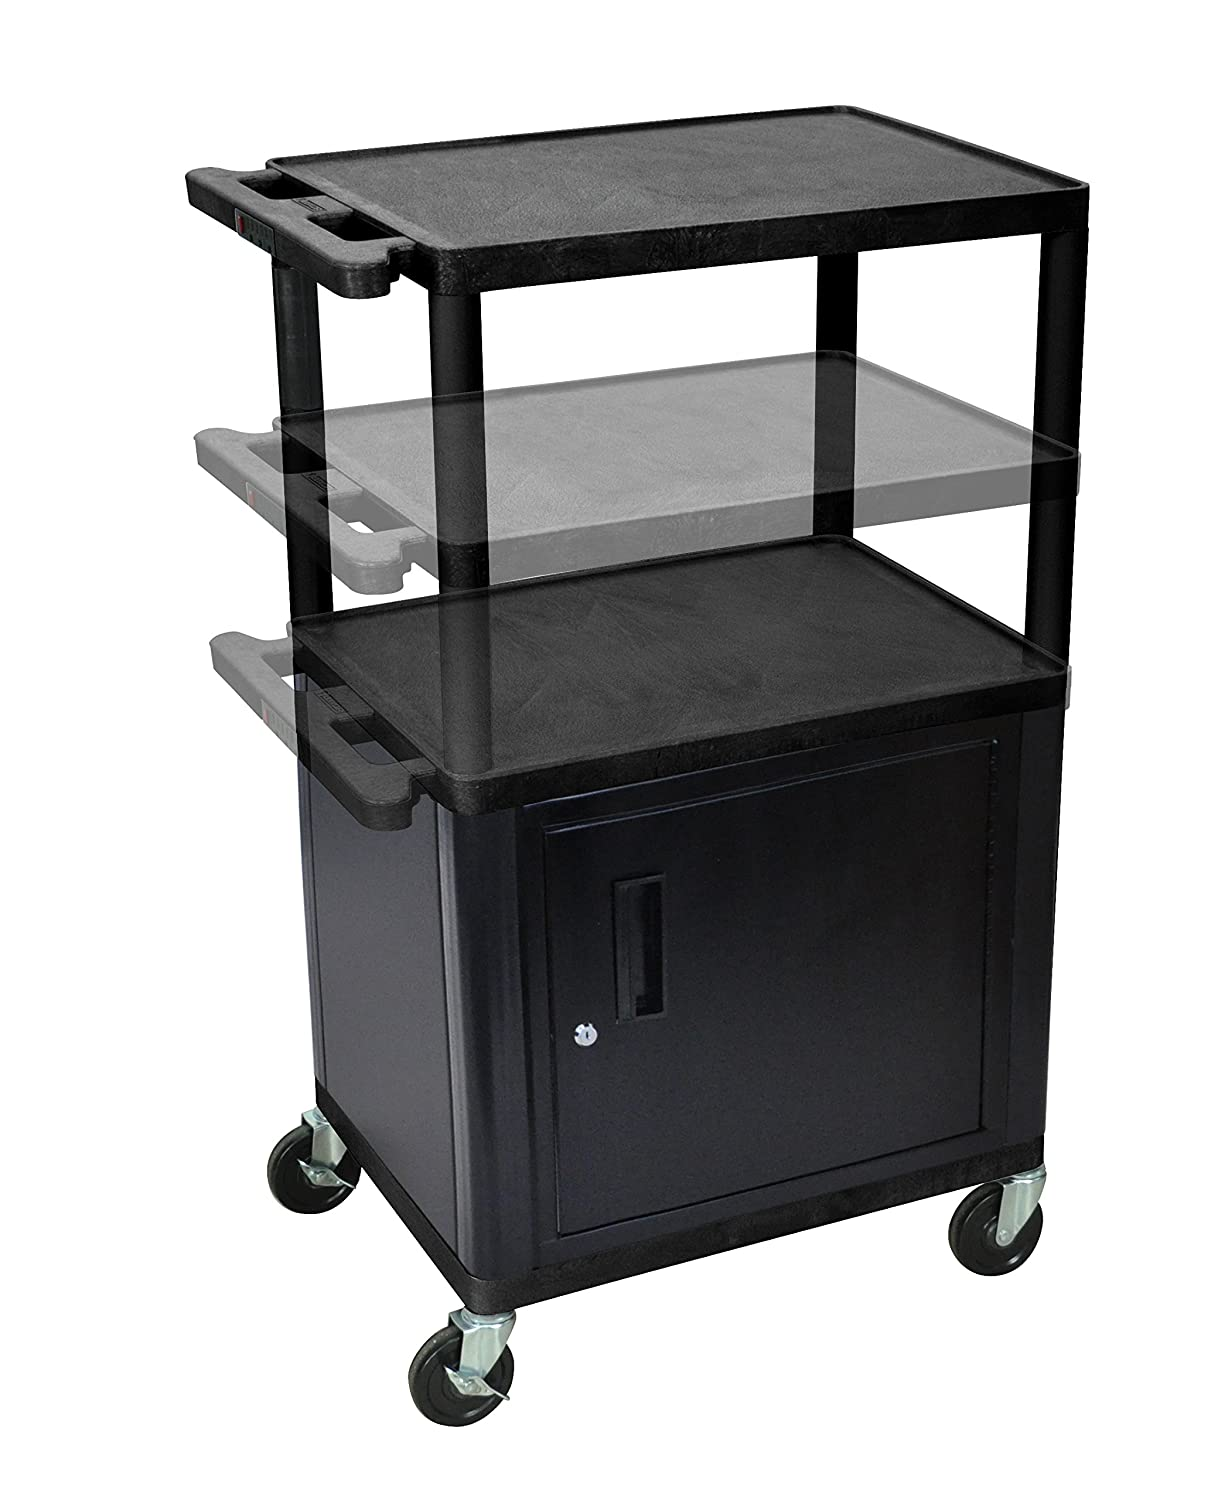 B000X91SSG LUXOR LPDUOCE-B Endura Presentation Cart, Multi Height with Cabinet and Electric, Black 81mD2BYunWEL._SL1500_